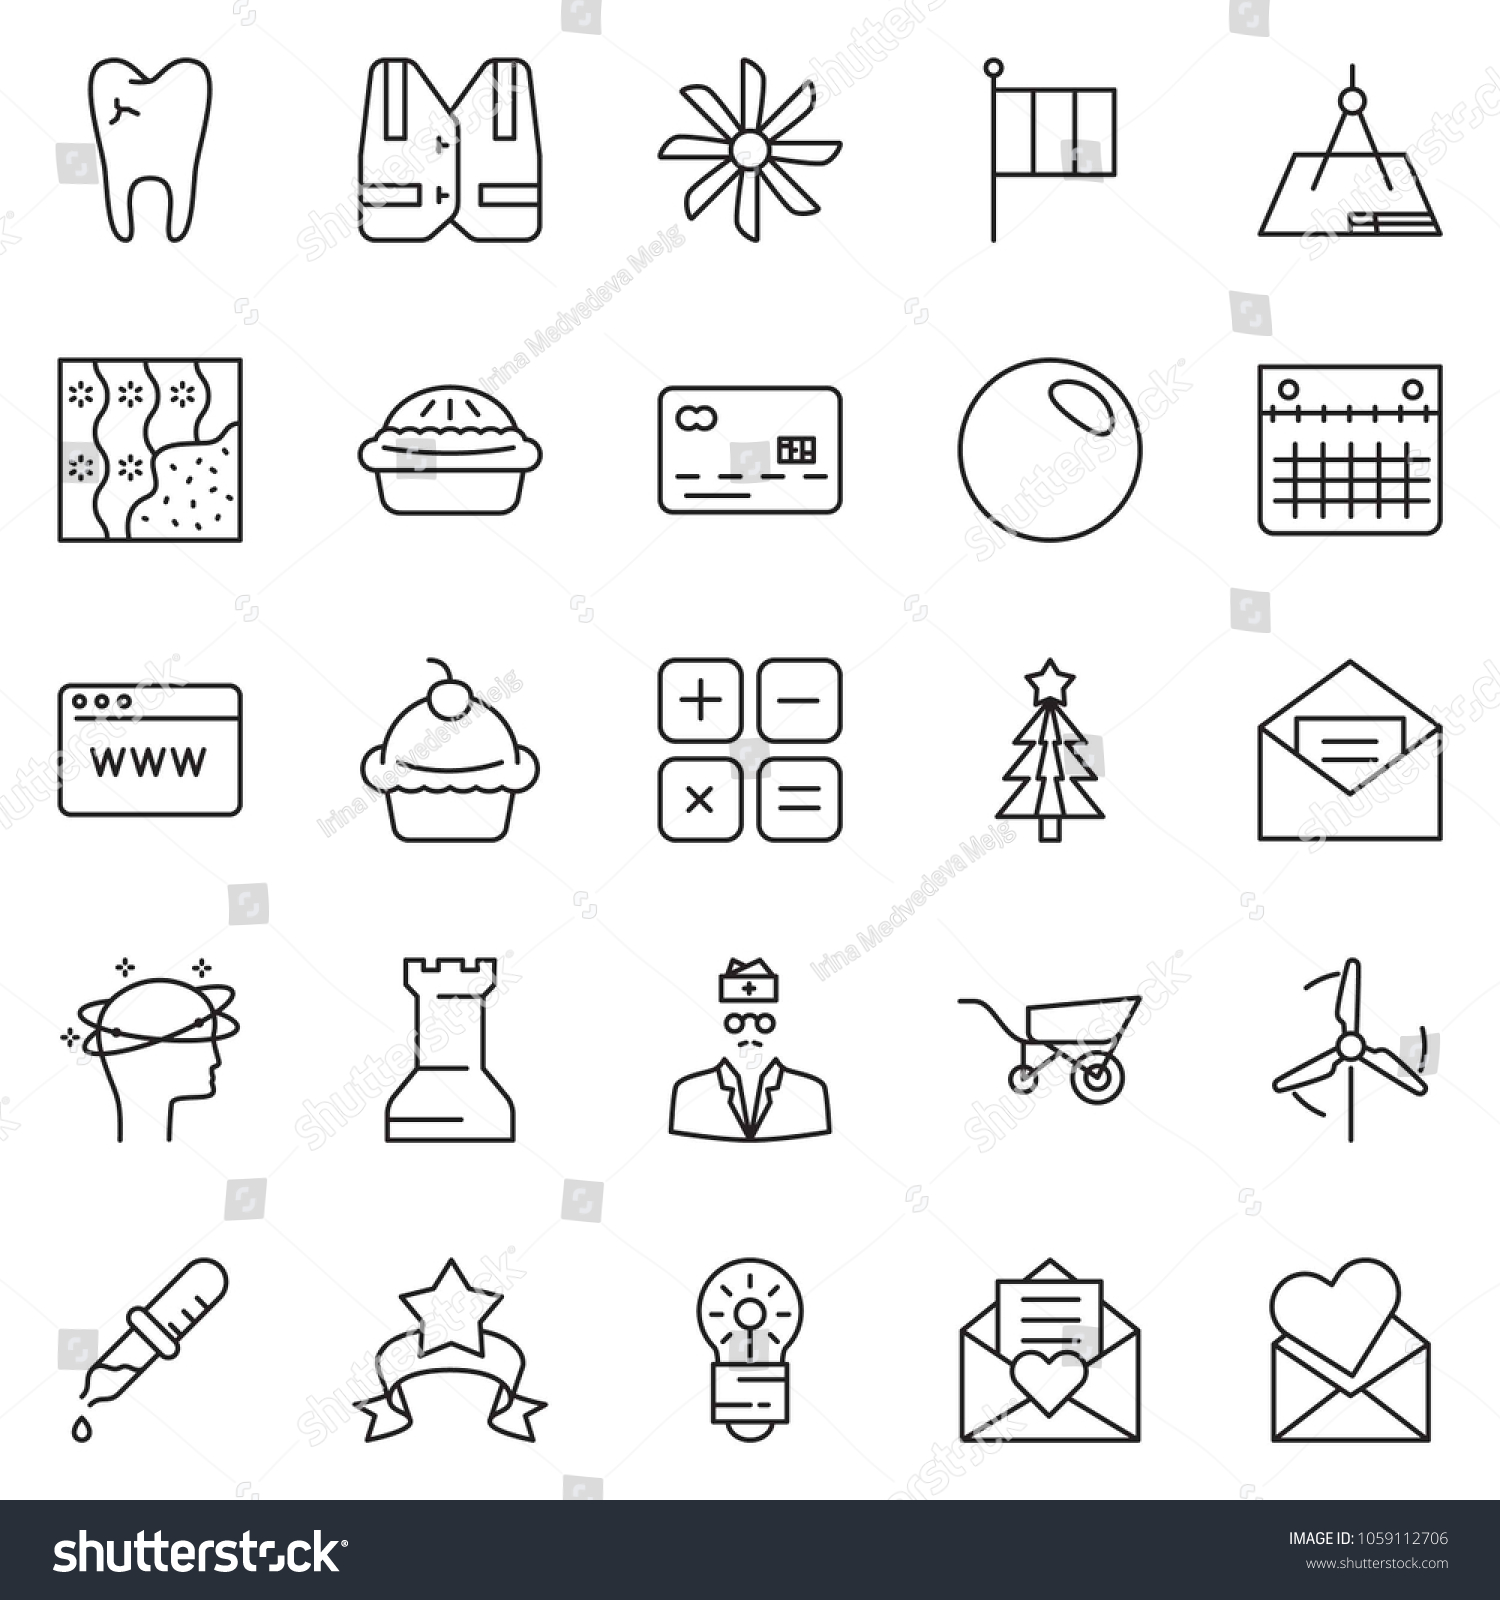 Thin Line Icon Set Newsletter Vector Stock Vector (Royalty Free ...